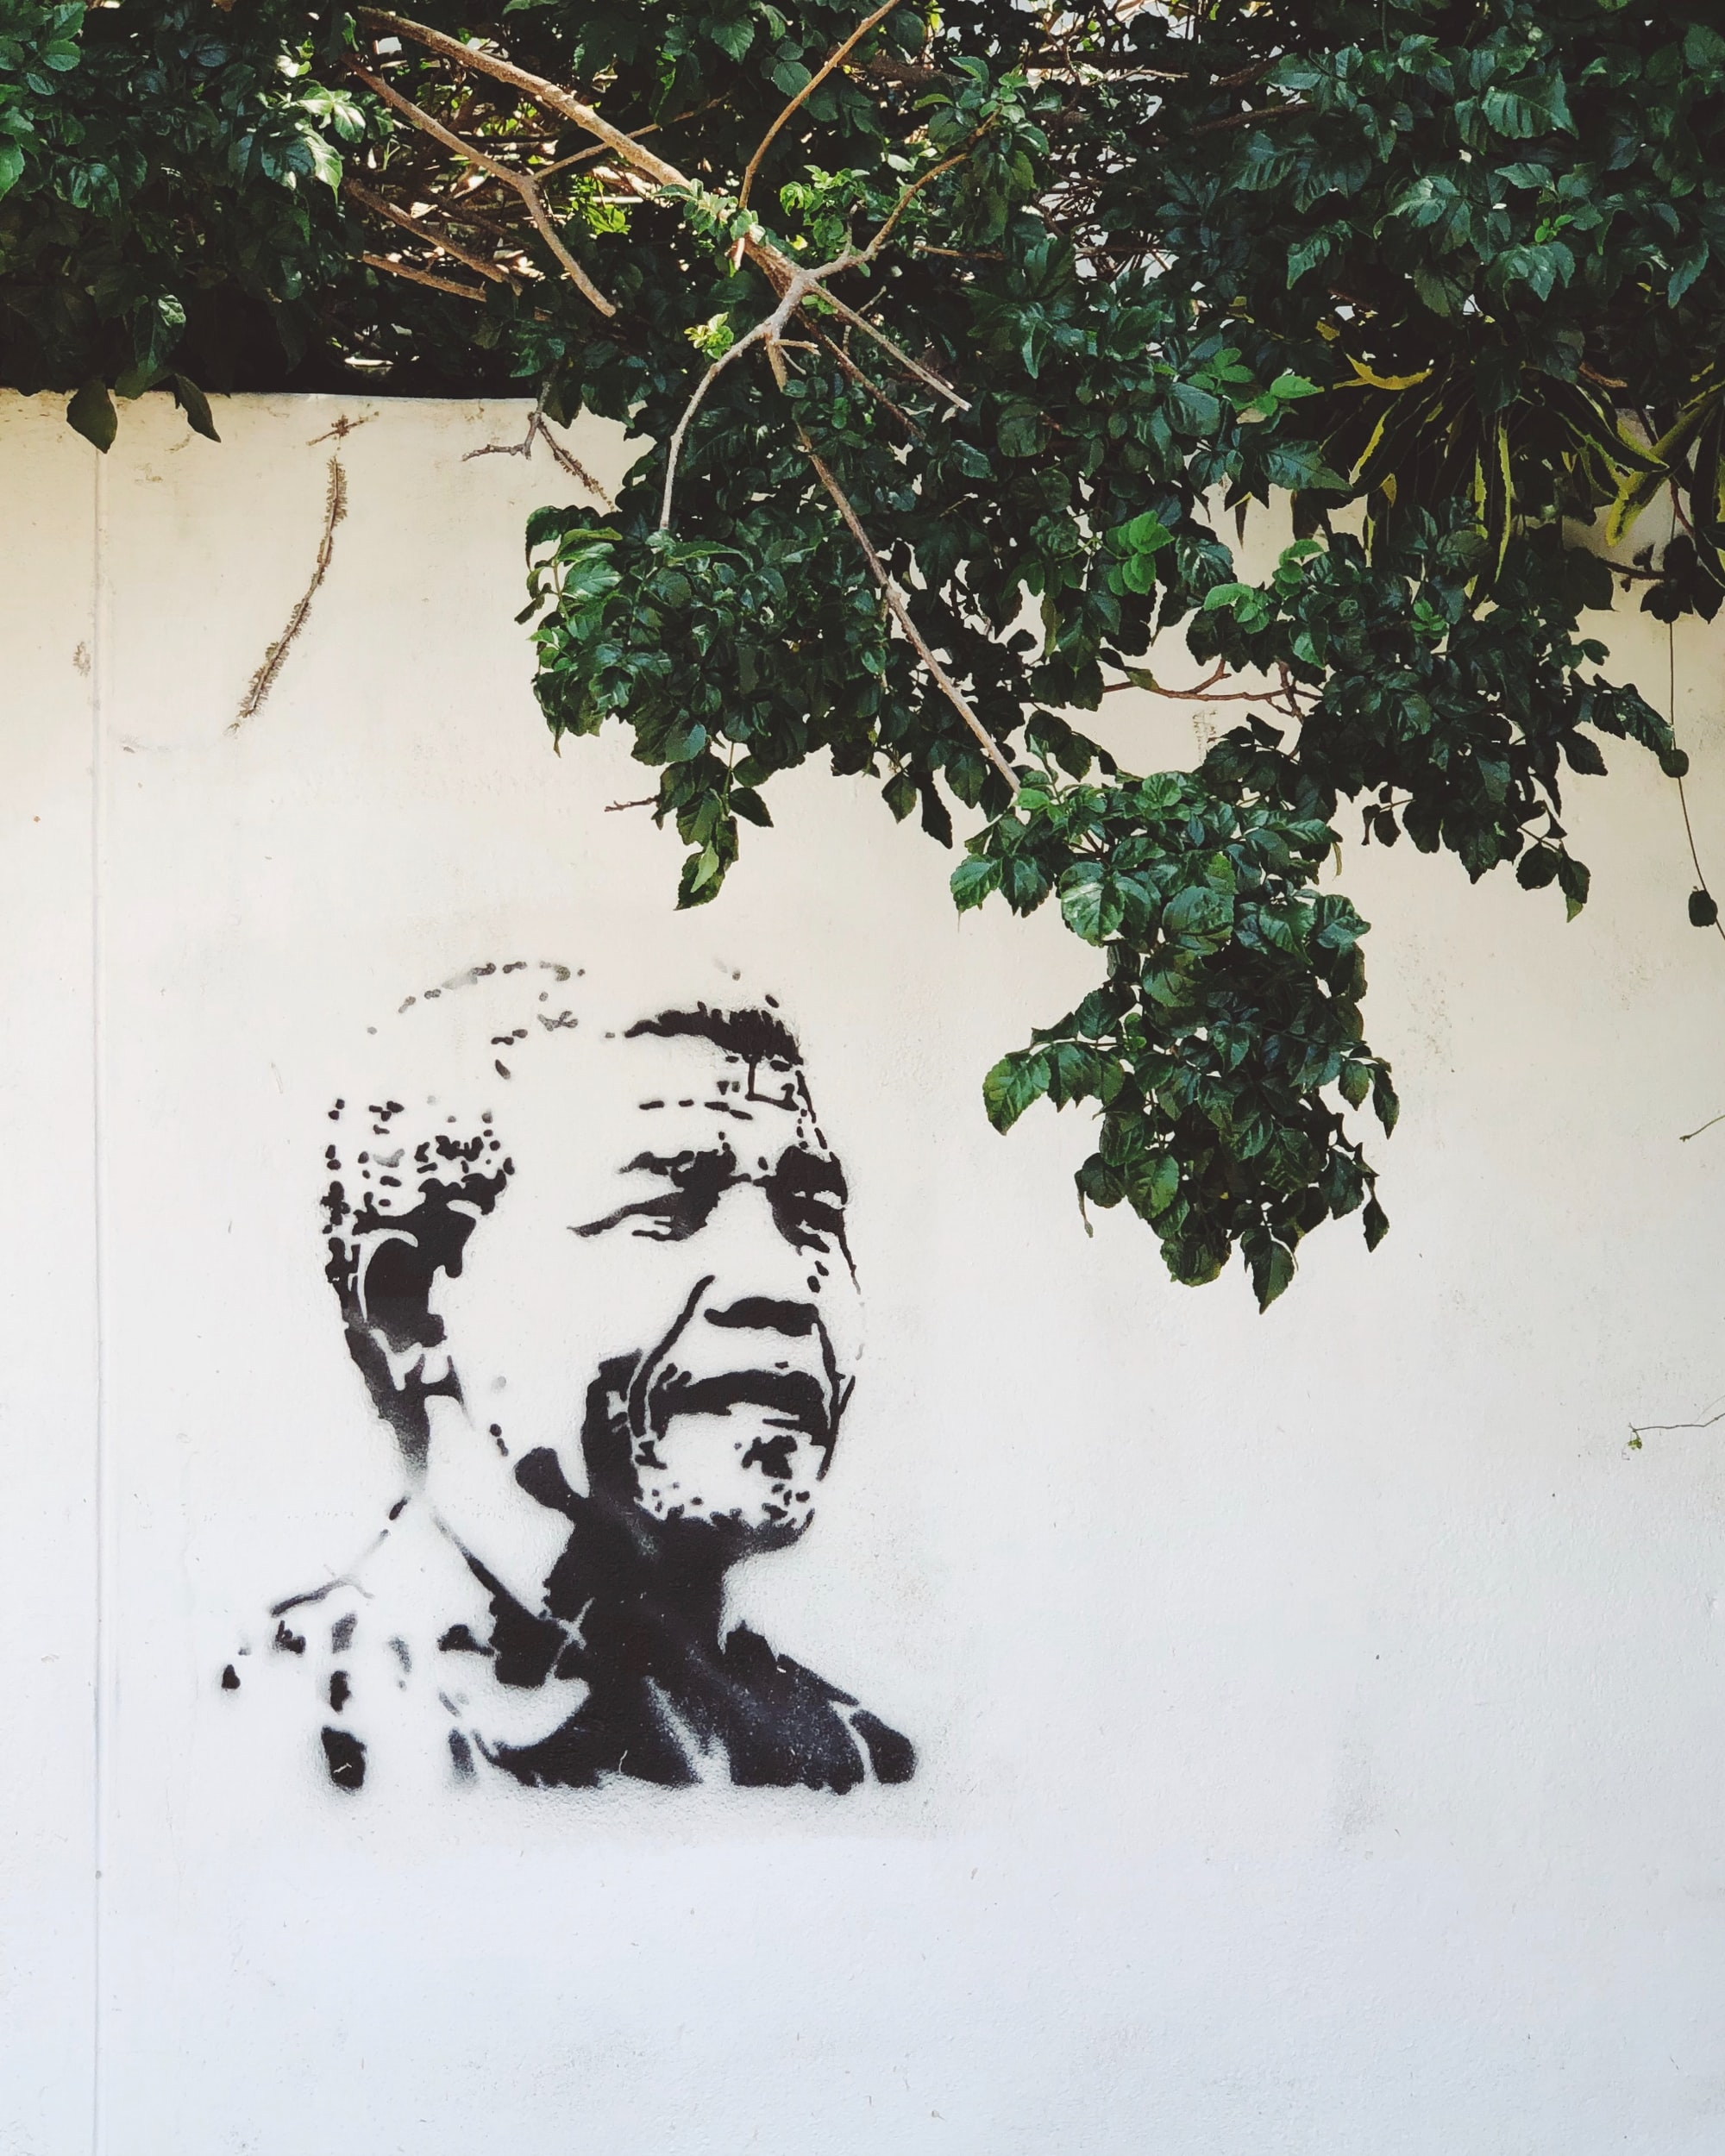 FREE MANDELA and other cardboard signs